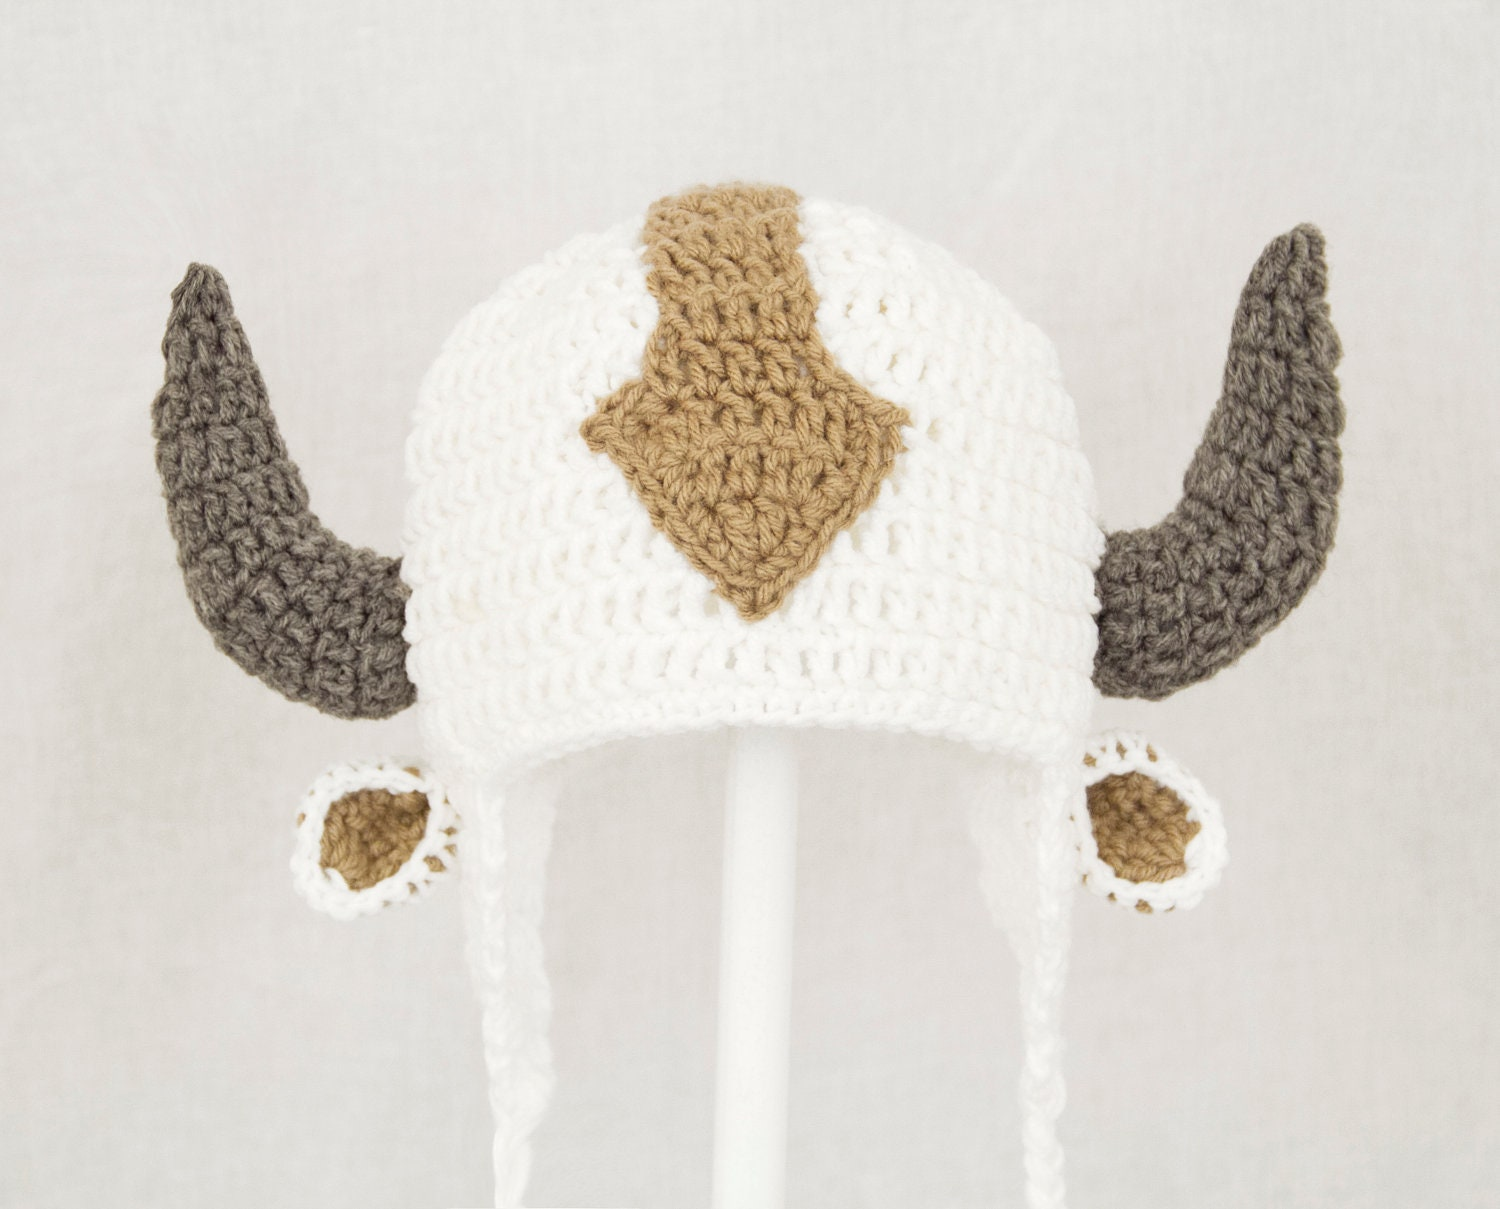 Appa the Flying Bison Earflap Hat from Avatar the Last Airbender, White Crochet Beanie, send size choice baby - adult - GeekinOut